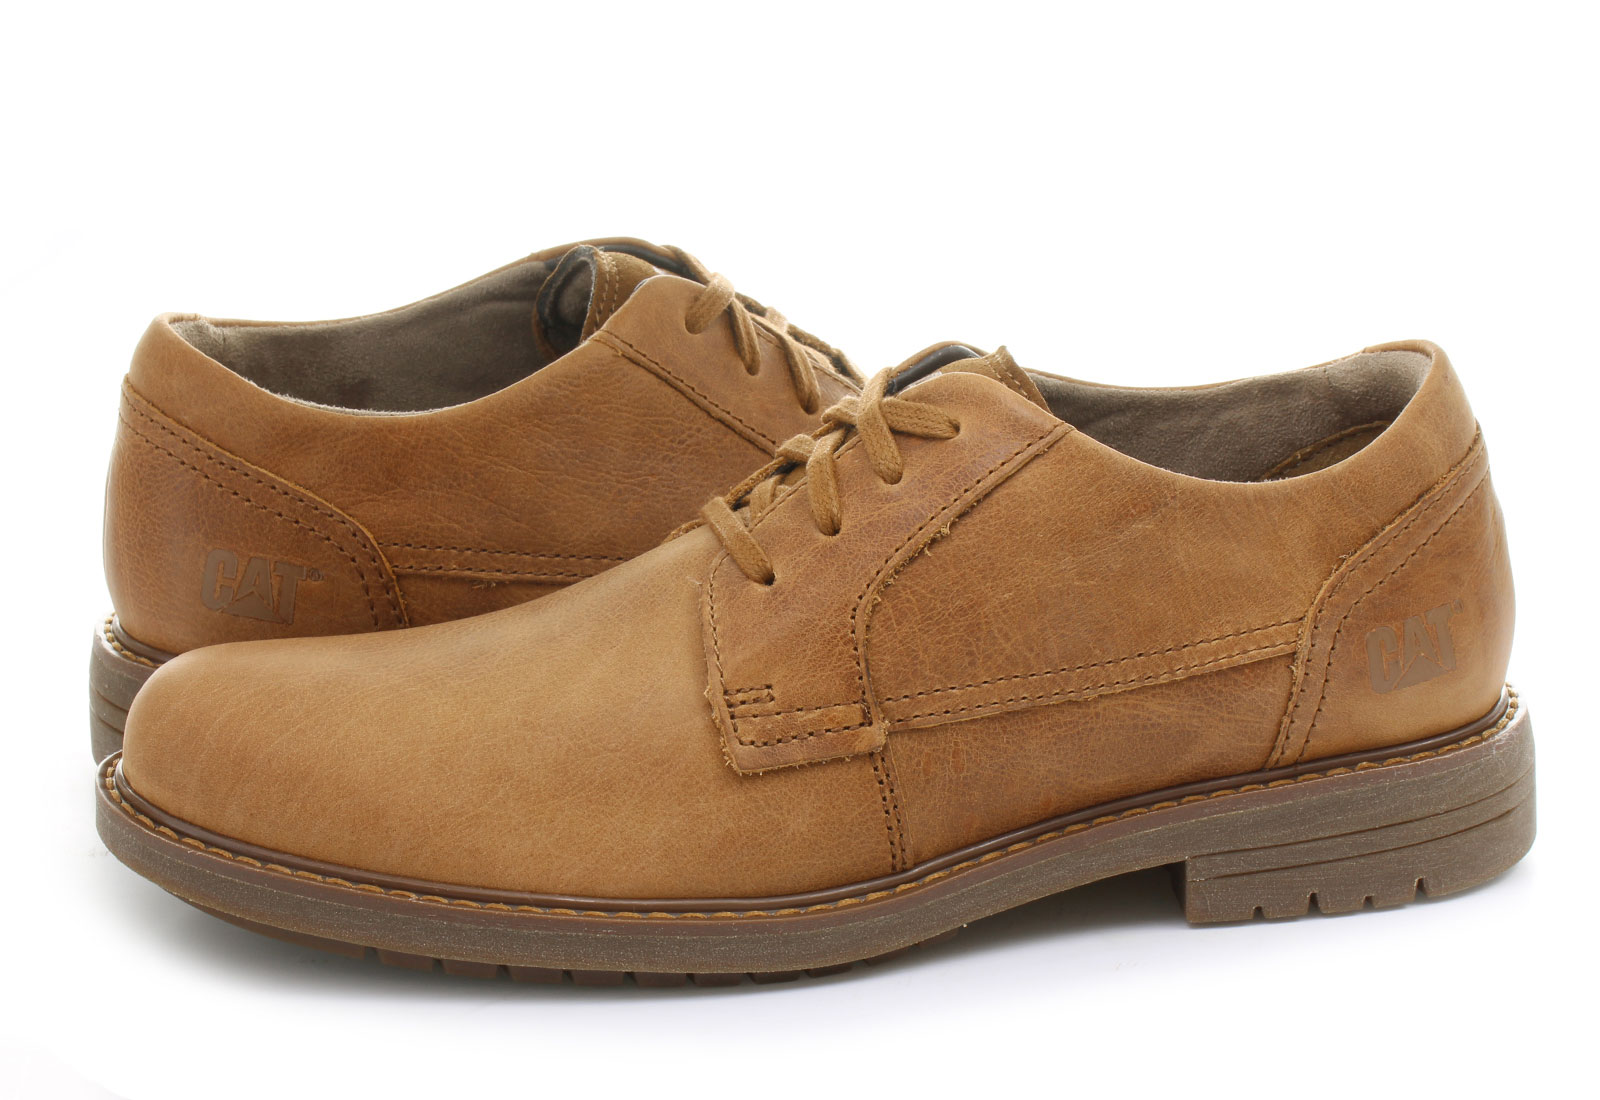 3187207bc19d6 Cat Shoes - Cason - 720294-lbr - Online shop for sneakers, shoes and ...